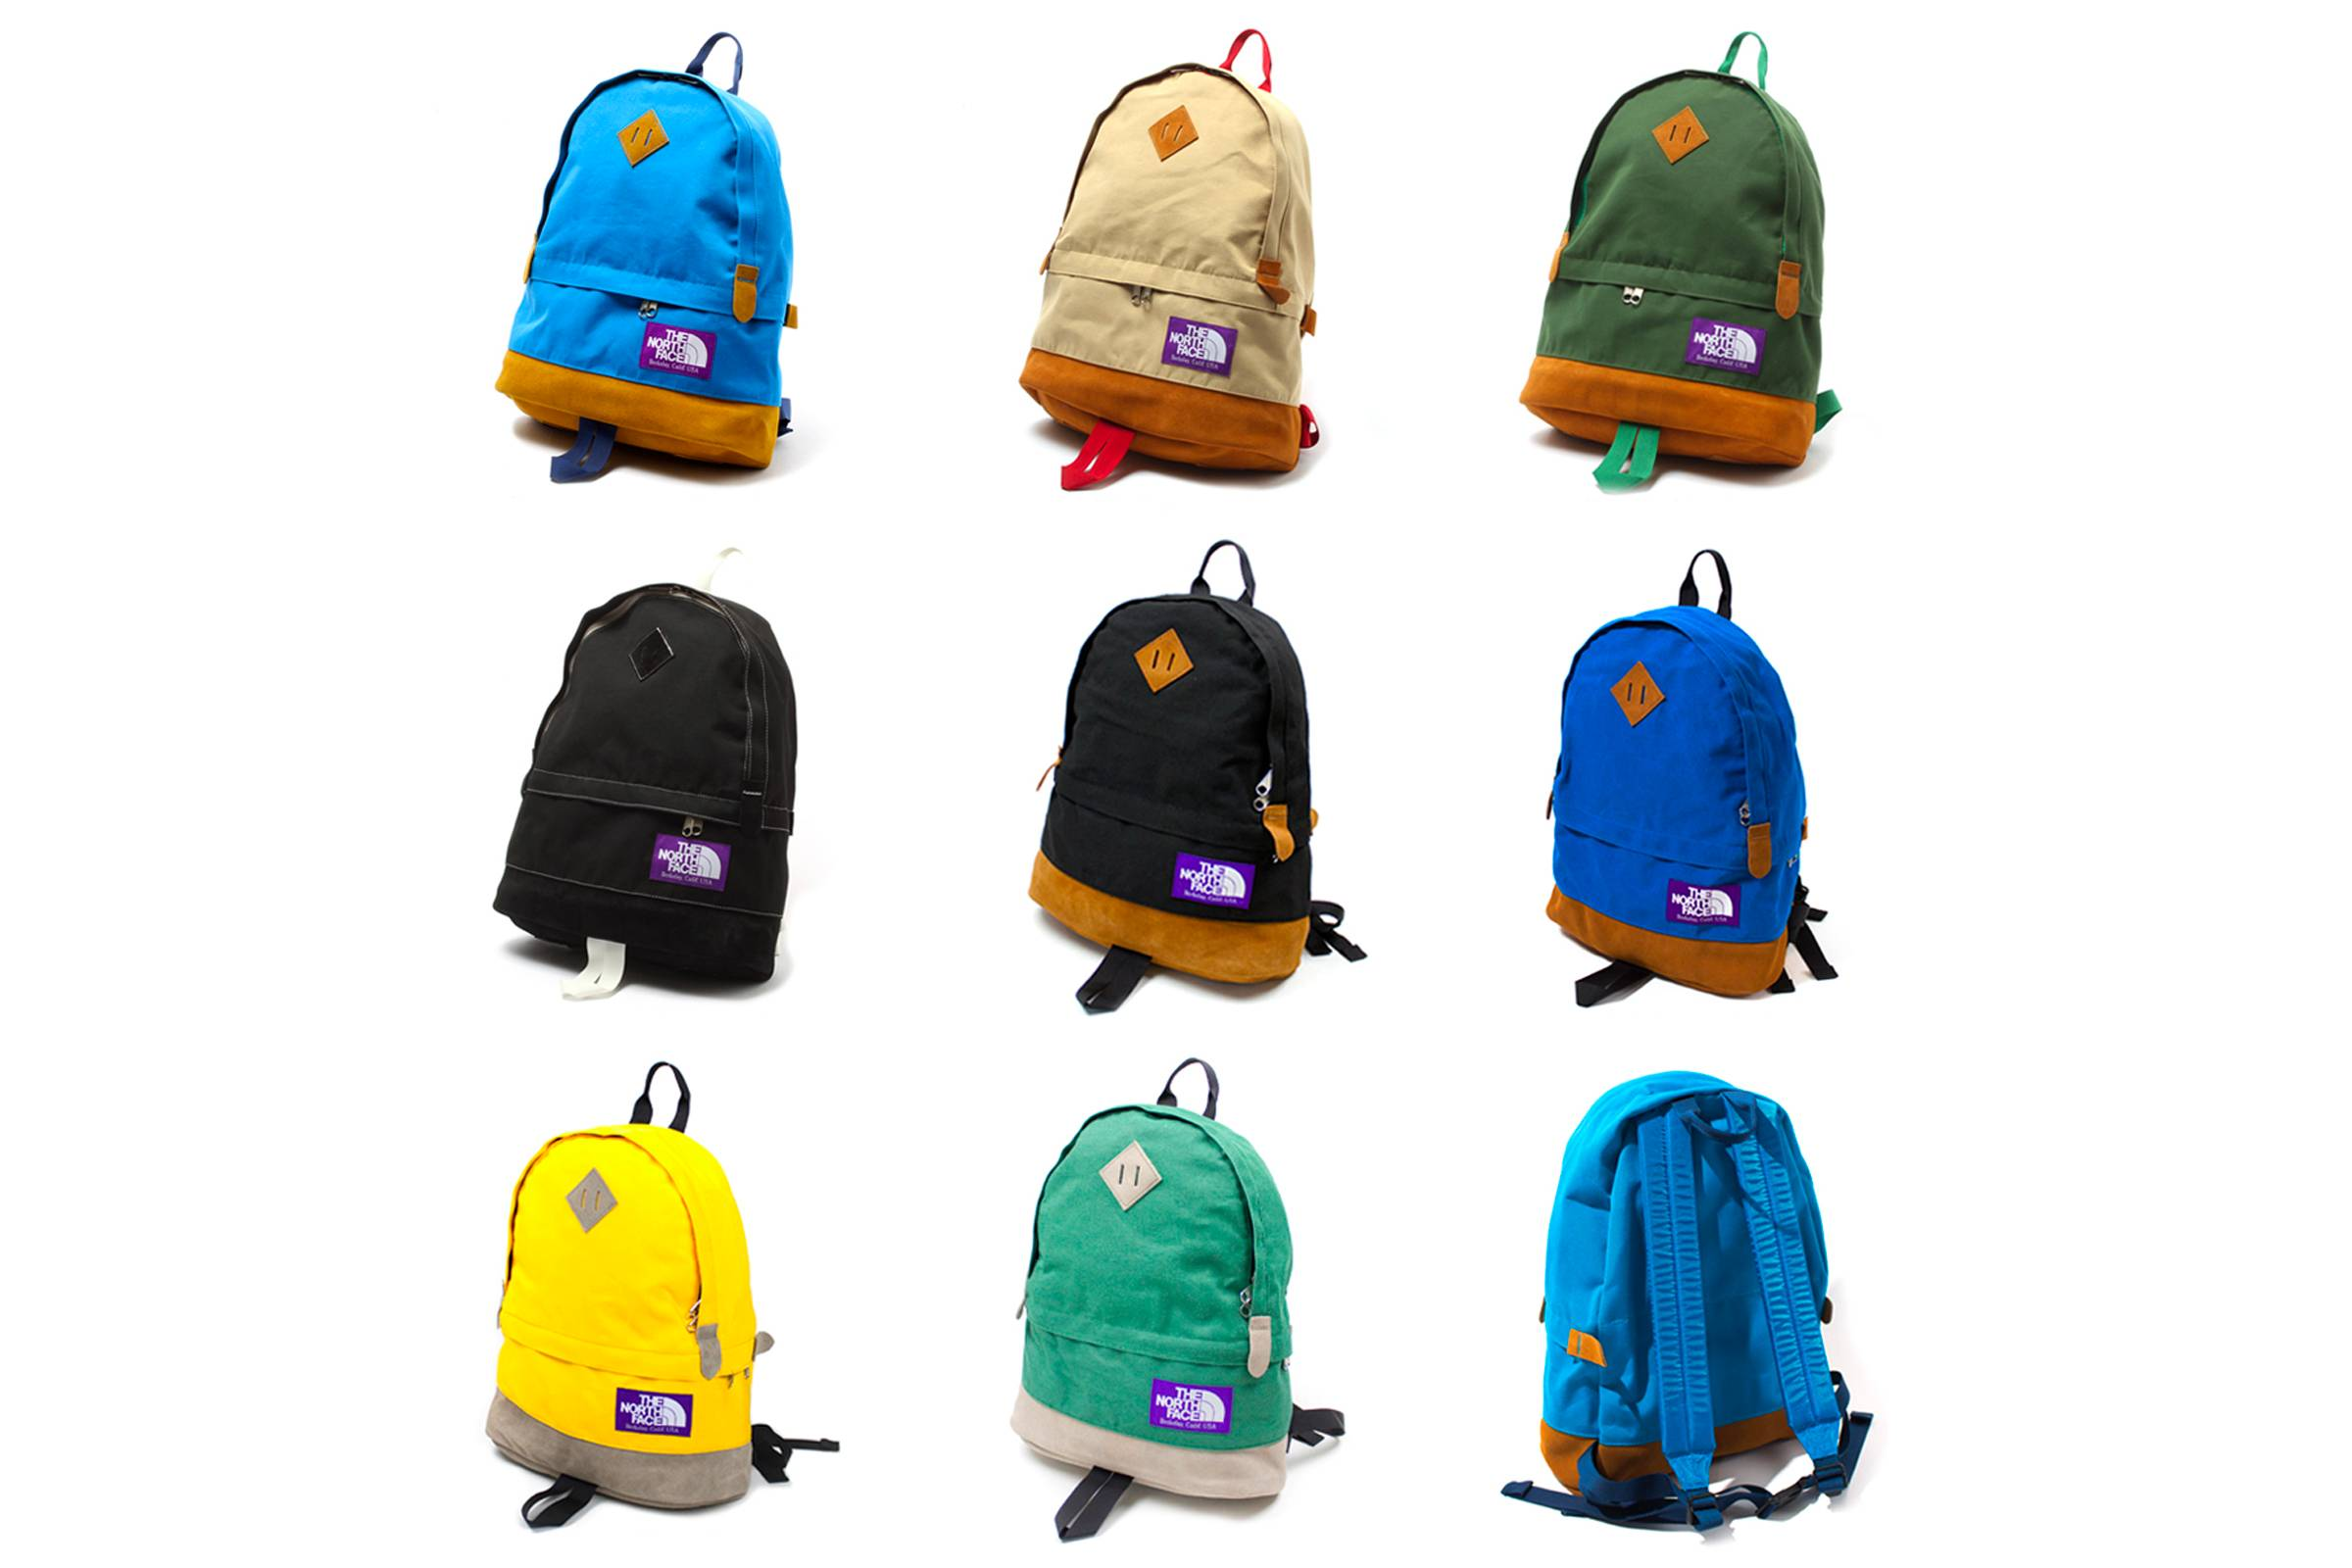 a7a22e22ede3 A Few of Our Favorite Backpacks Right Now - Best Backpacks Right Now ...